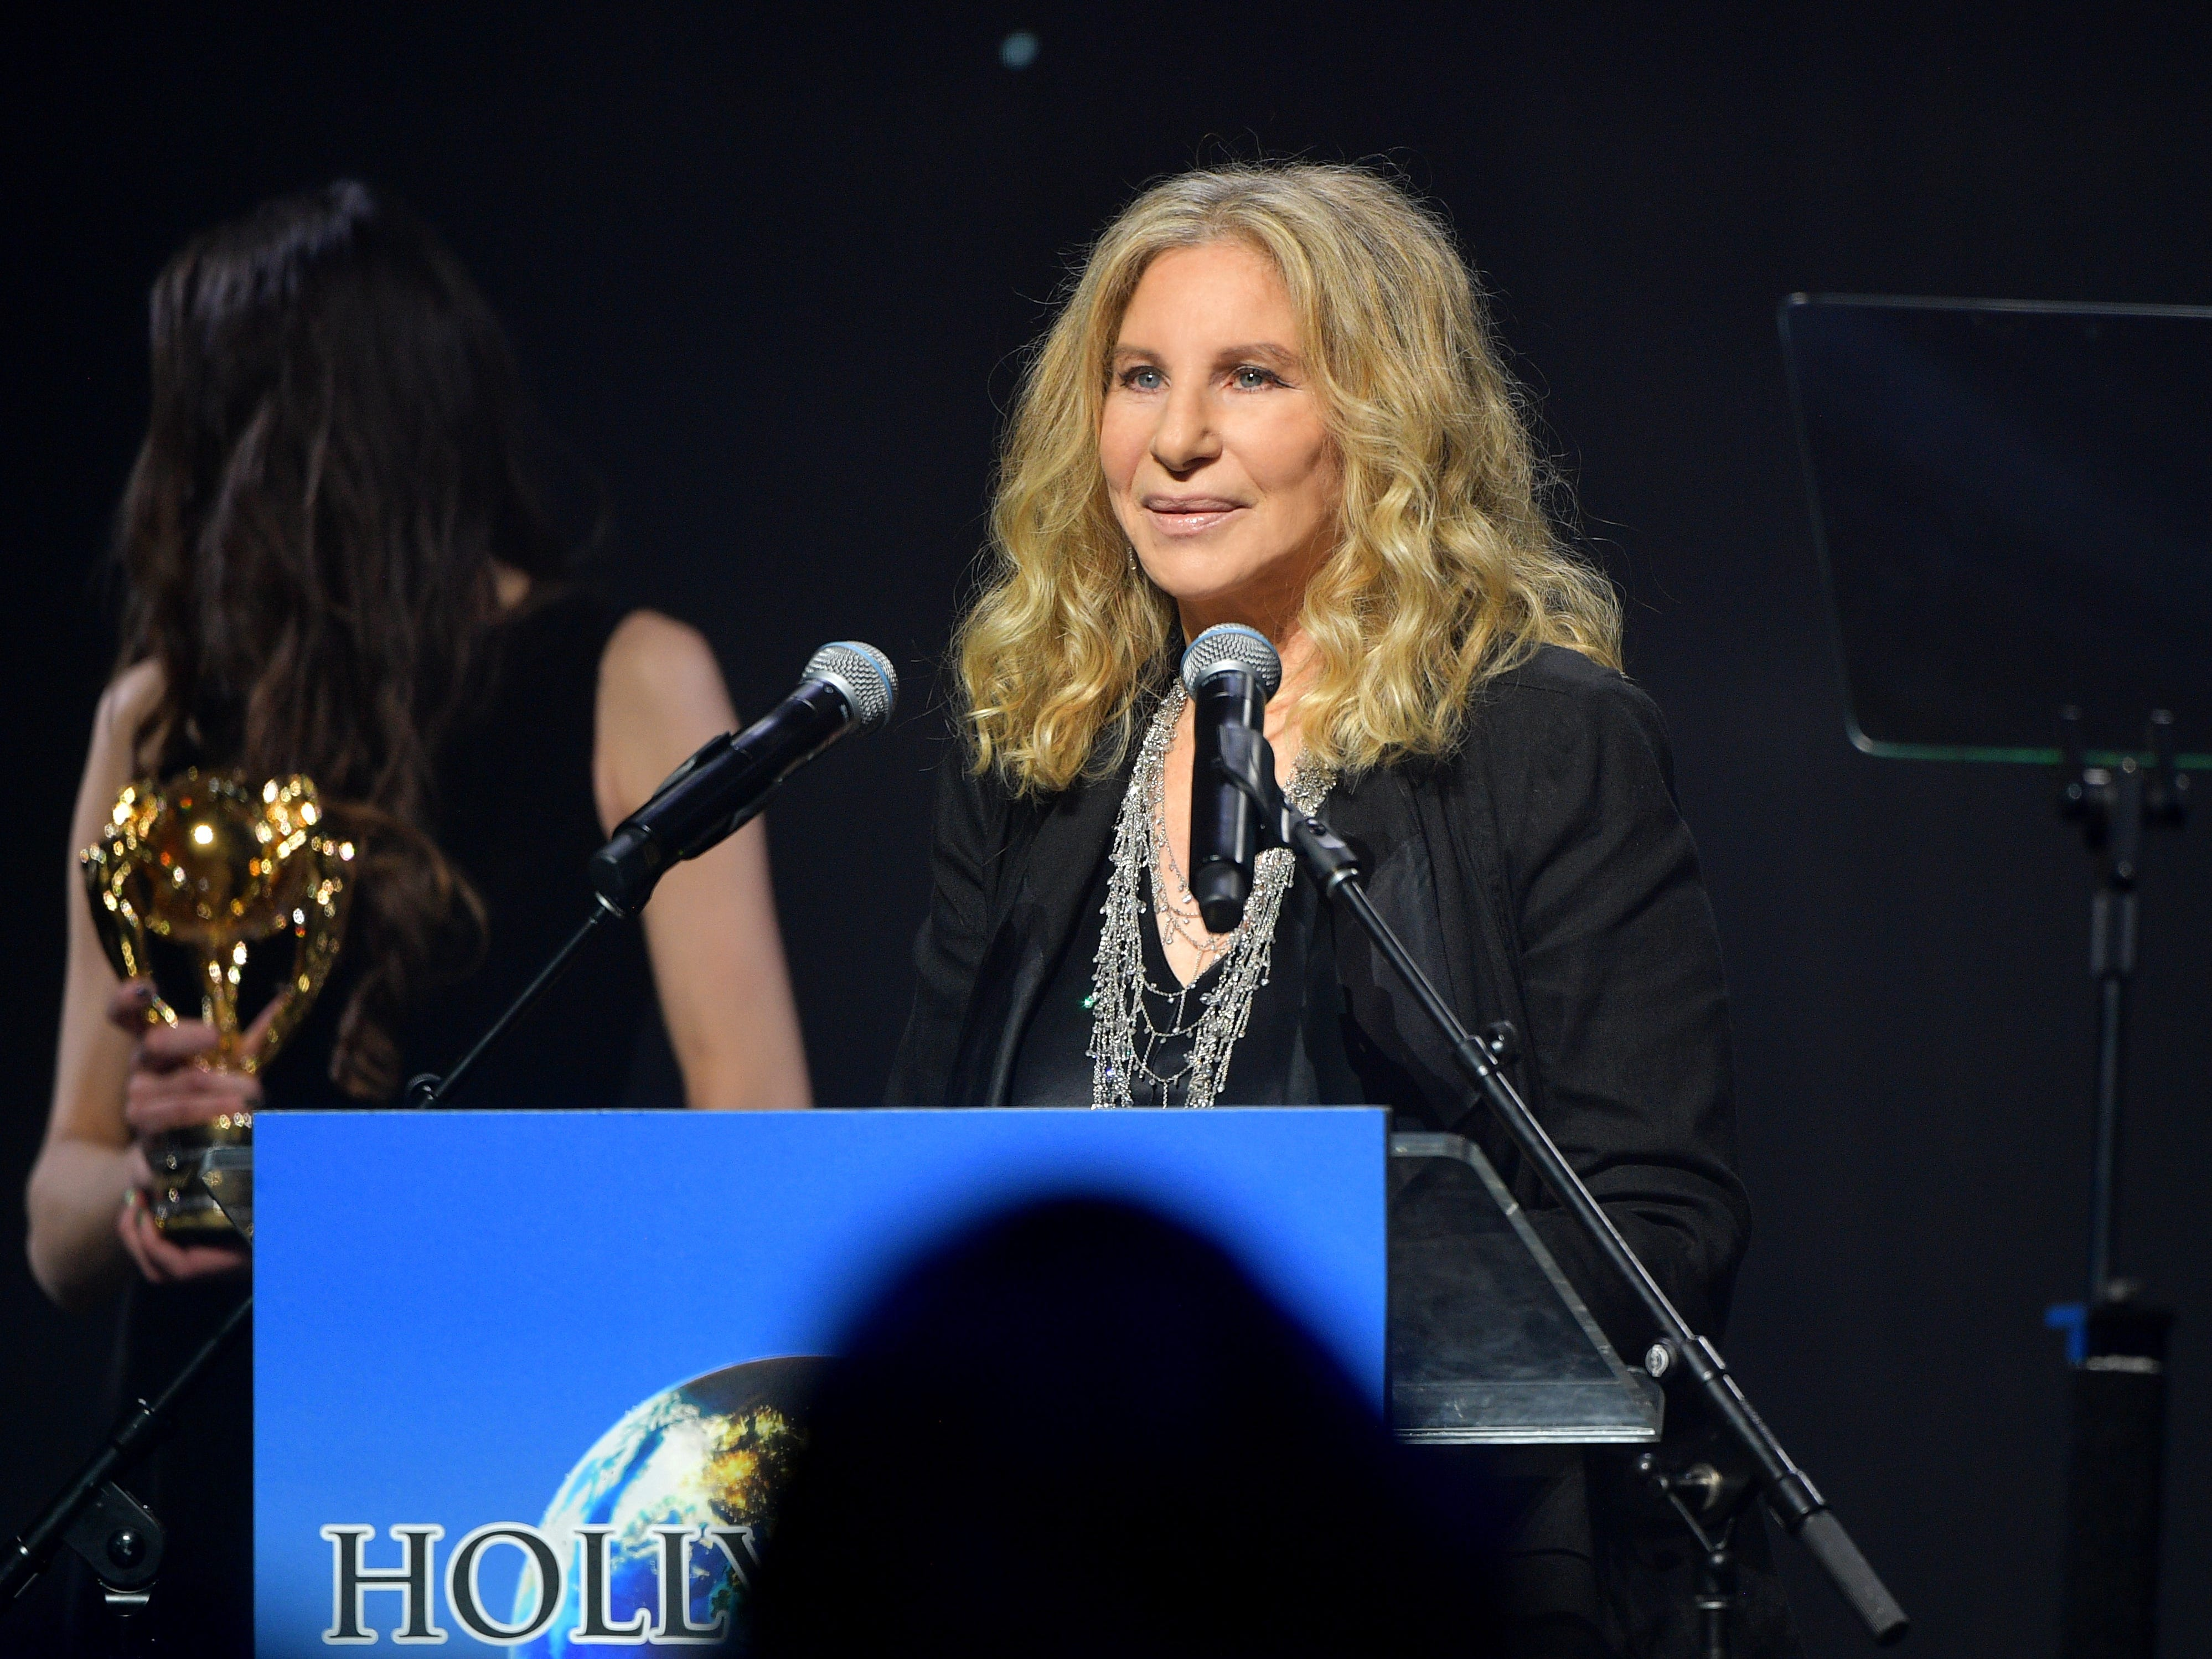 BEVERLY HILLS, CA - FEBRUARY 21:  Barbra Streisand accepts her award onstage at the UCLA IoES honors Barbra Streisand and Gisele Bundchen at the 2019 Hollywood for Science Gala on February 21, 2019 in Beverly Hills, California.  (Photo by Matt Winkelmeyer/Getty Images for UCLA Institute of the Environment & Sustainability) ORG XMIT: 775291341 ORIG FILE ID: 1126683348